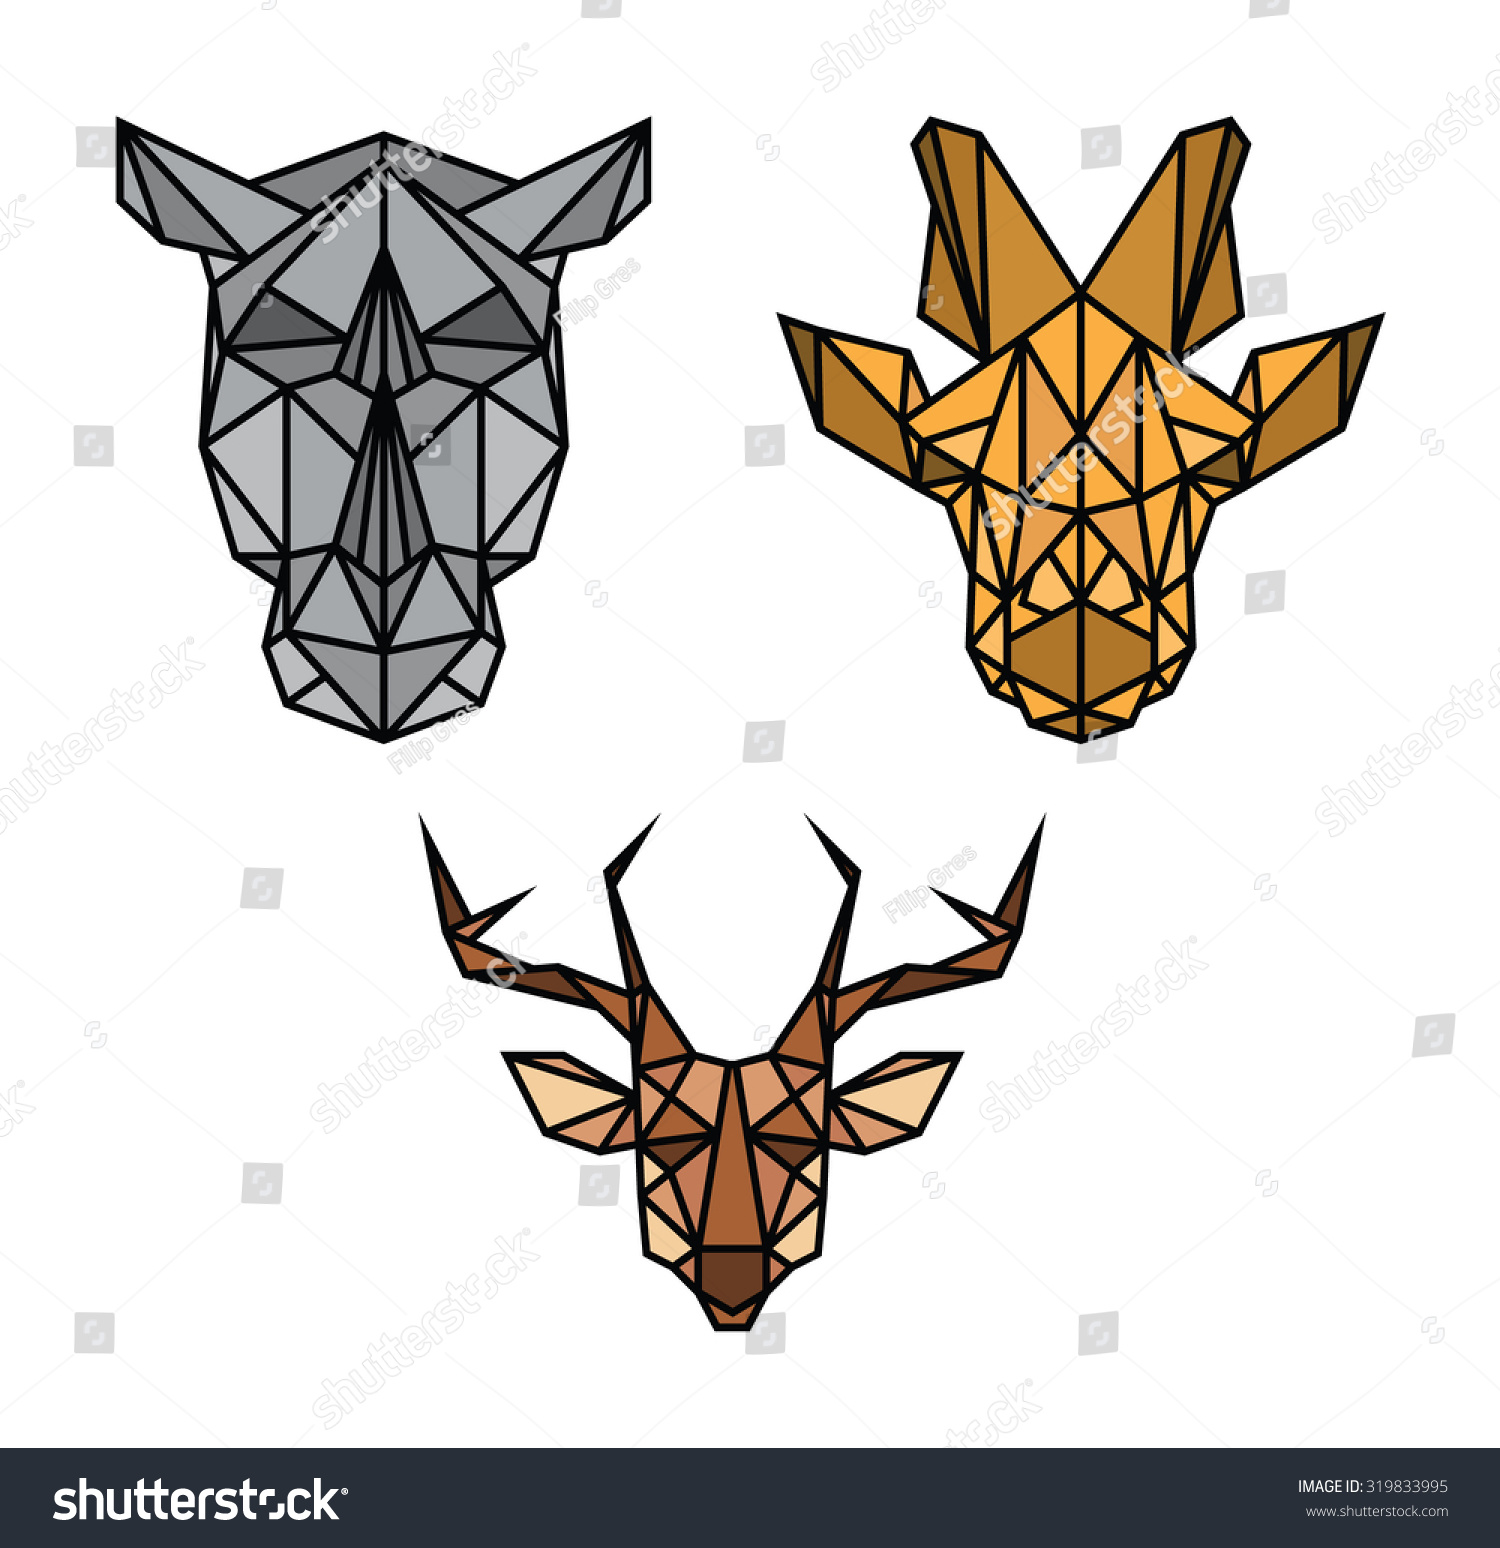 Geometric Animal Heads Stock Vector 319833995 - Shutterstock